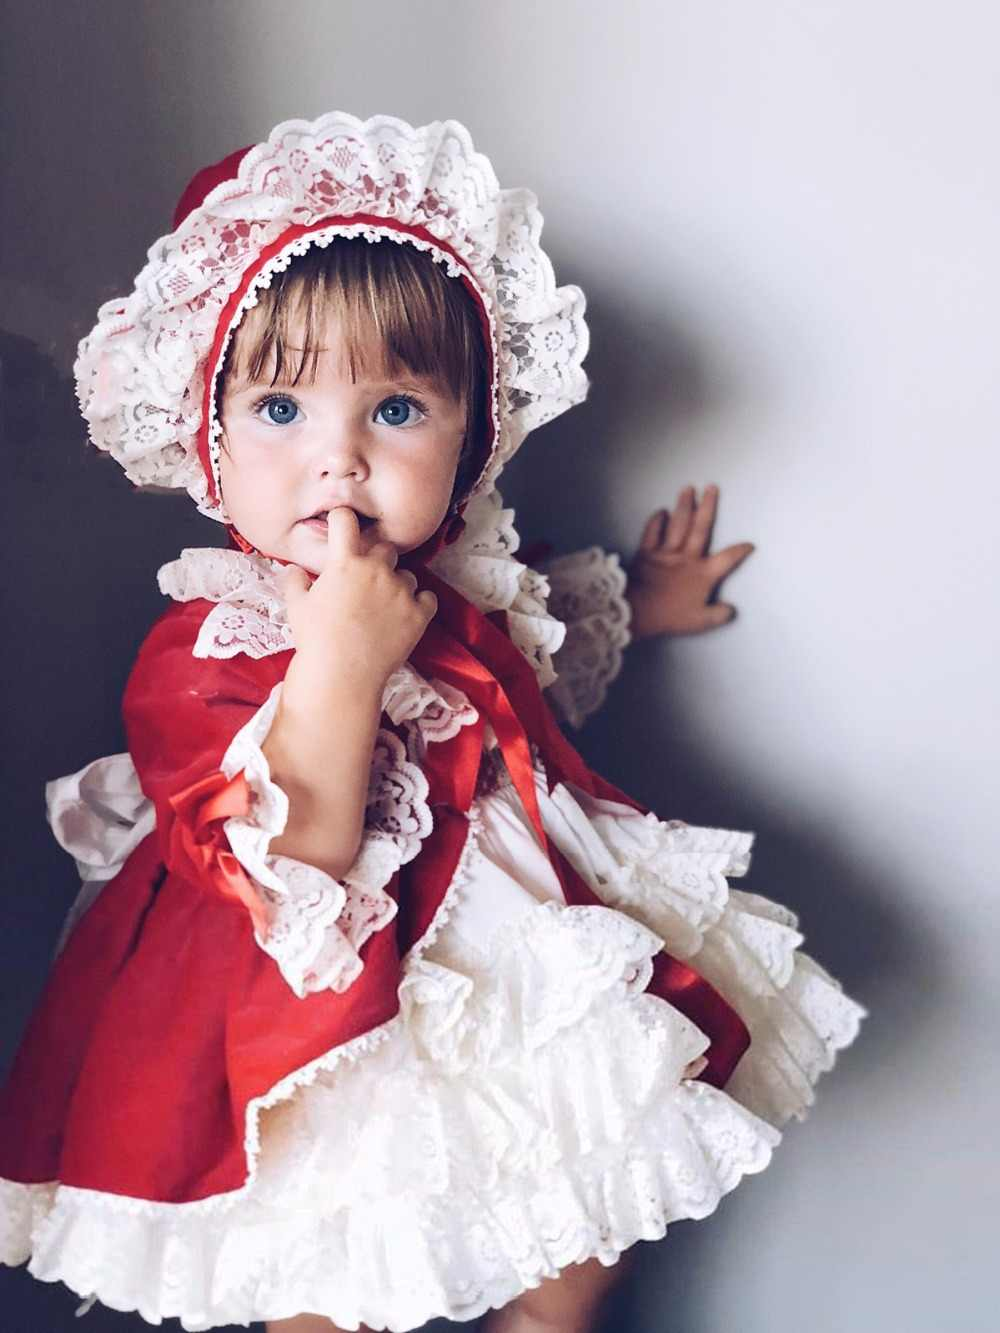 Spanish Girls Check Dress Princess Toddler Christmas Party Autumn With Headwear